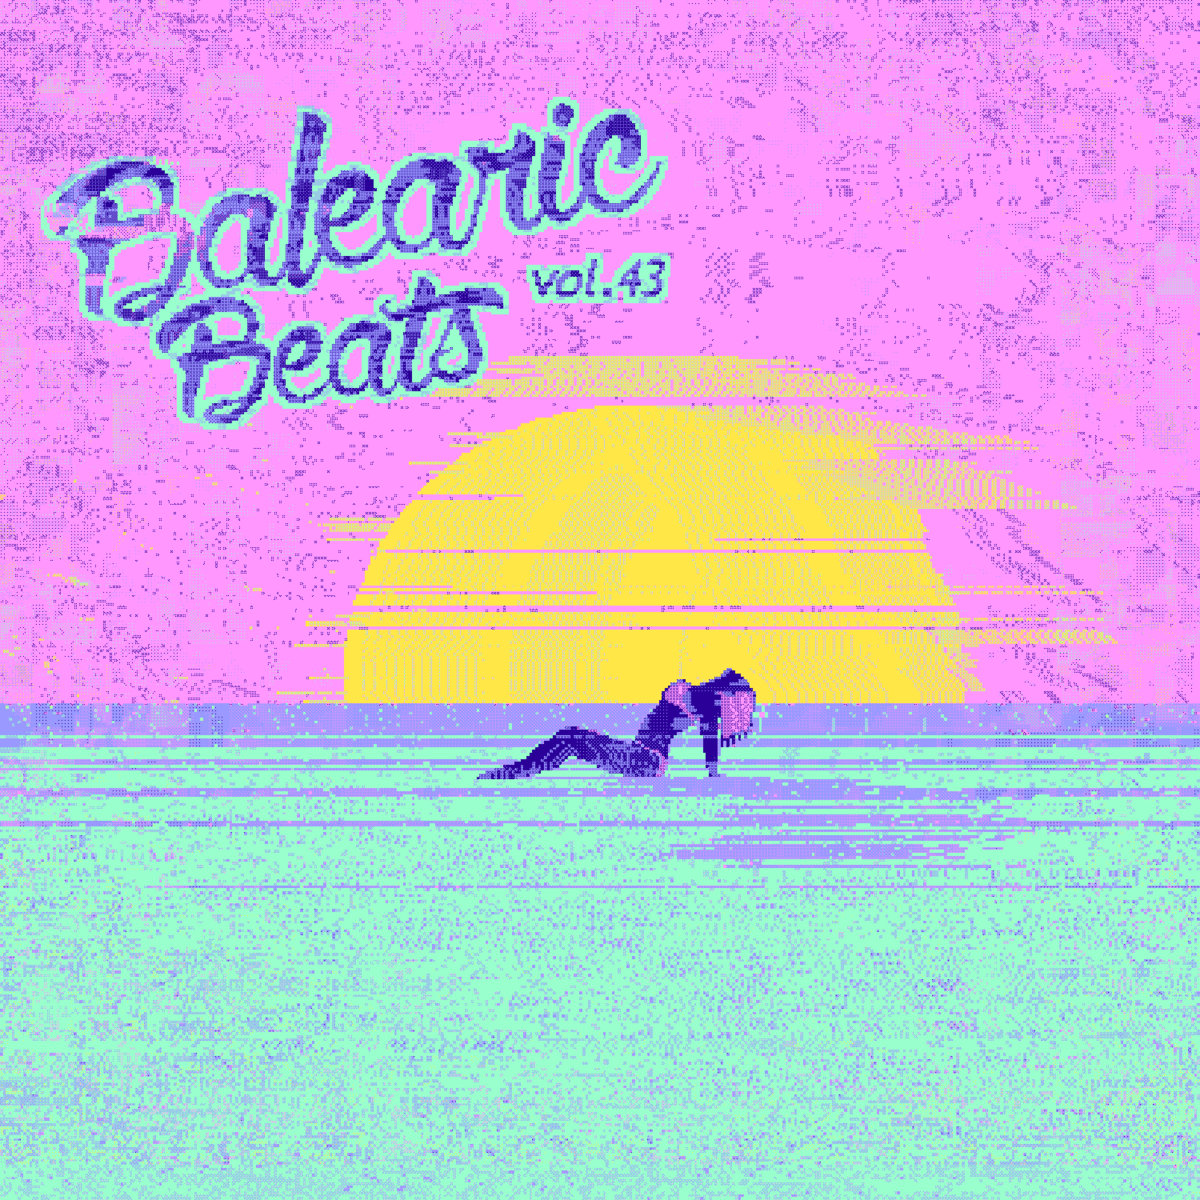 V/A: Balearic Beats vol. 43